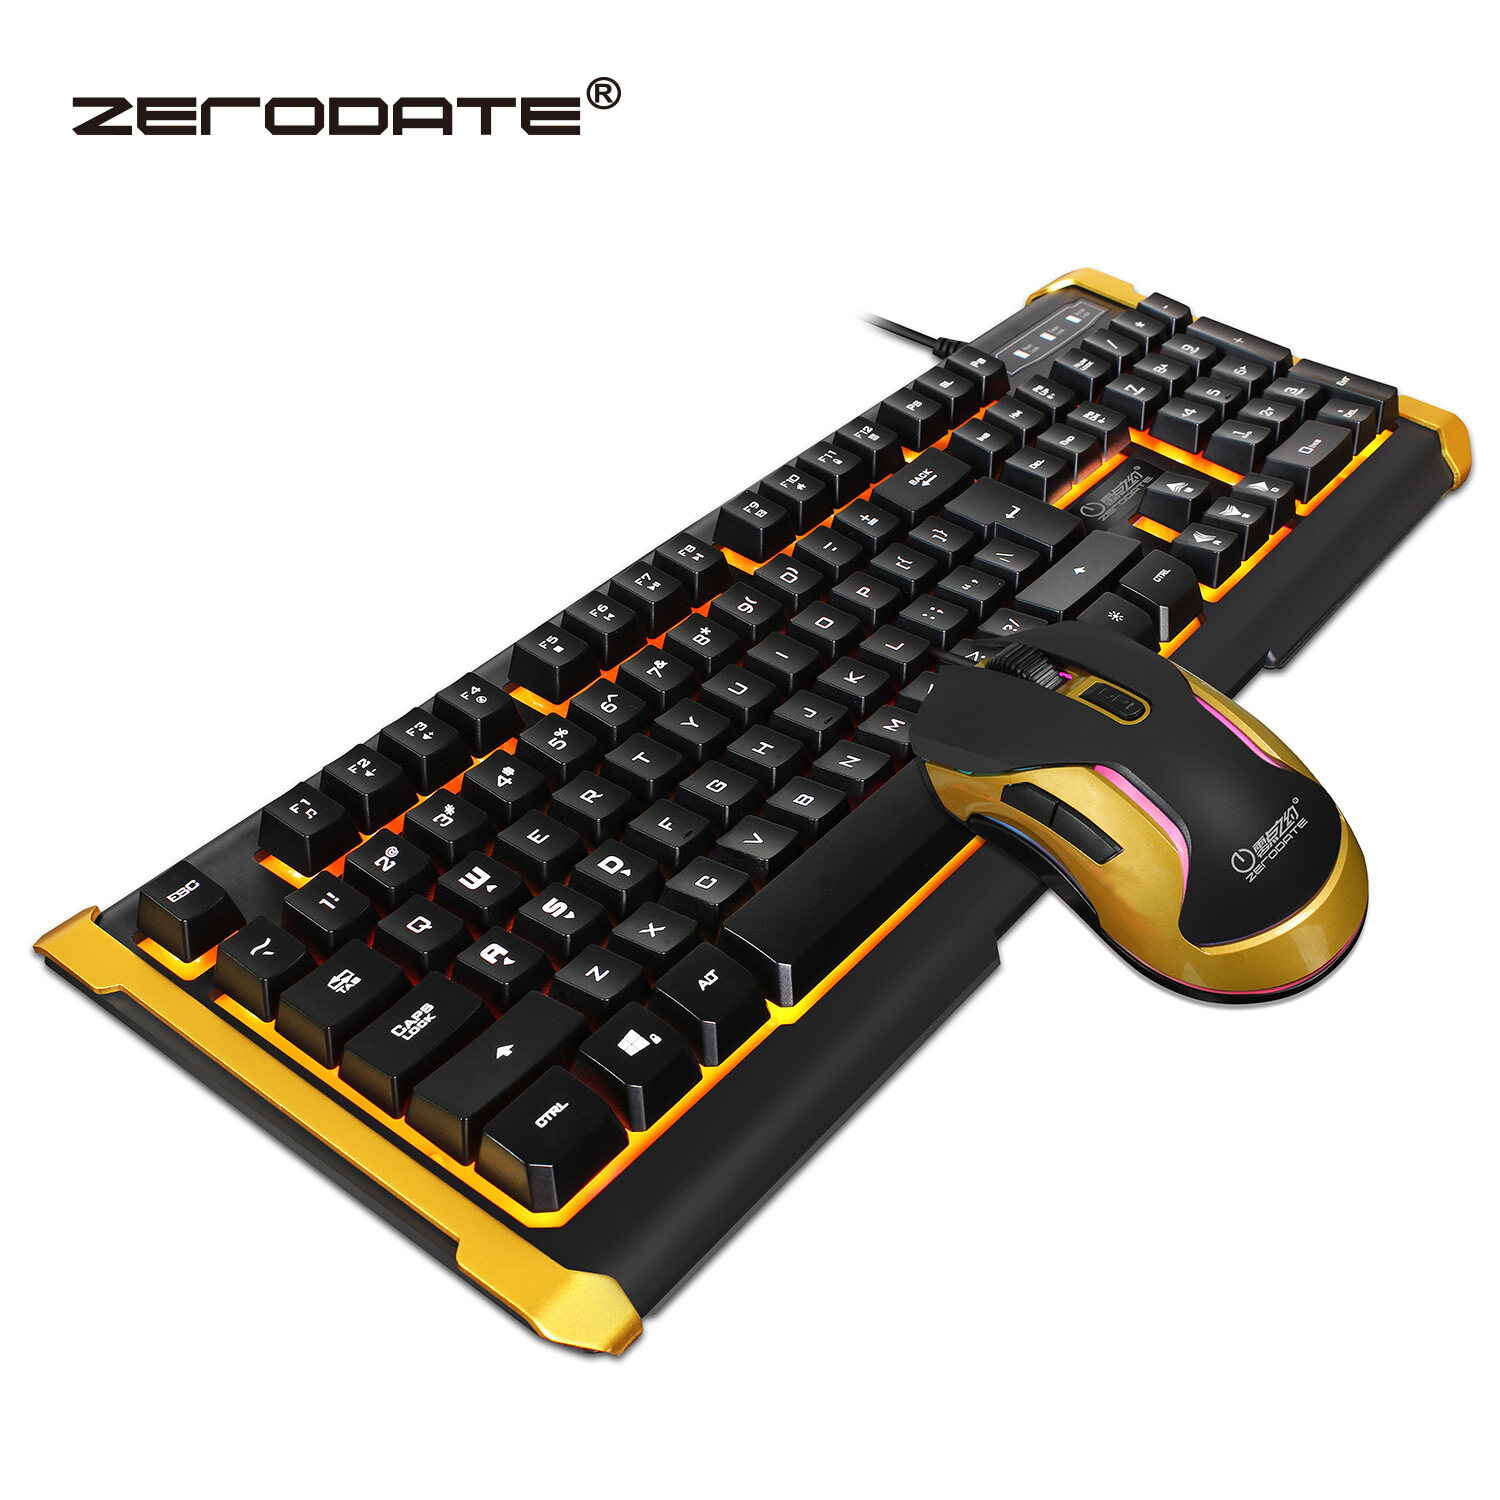 Aninimal Book: Wried Gaming Keyboard and Mouse Combo Regular Mechanical ...